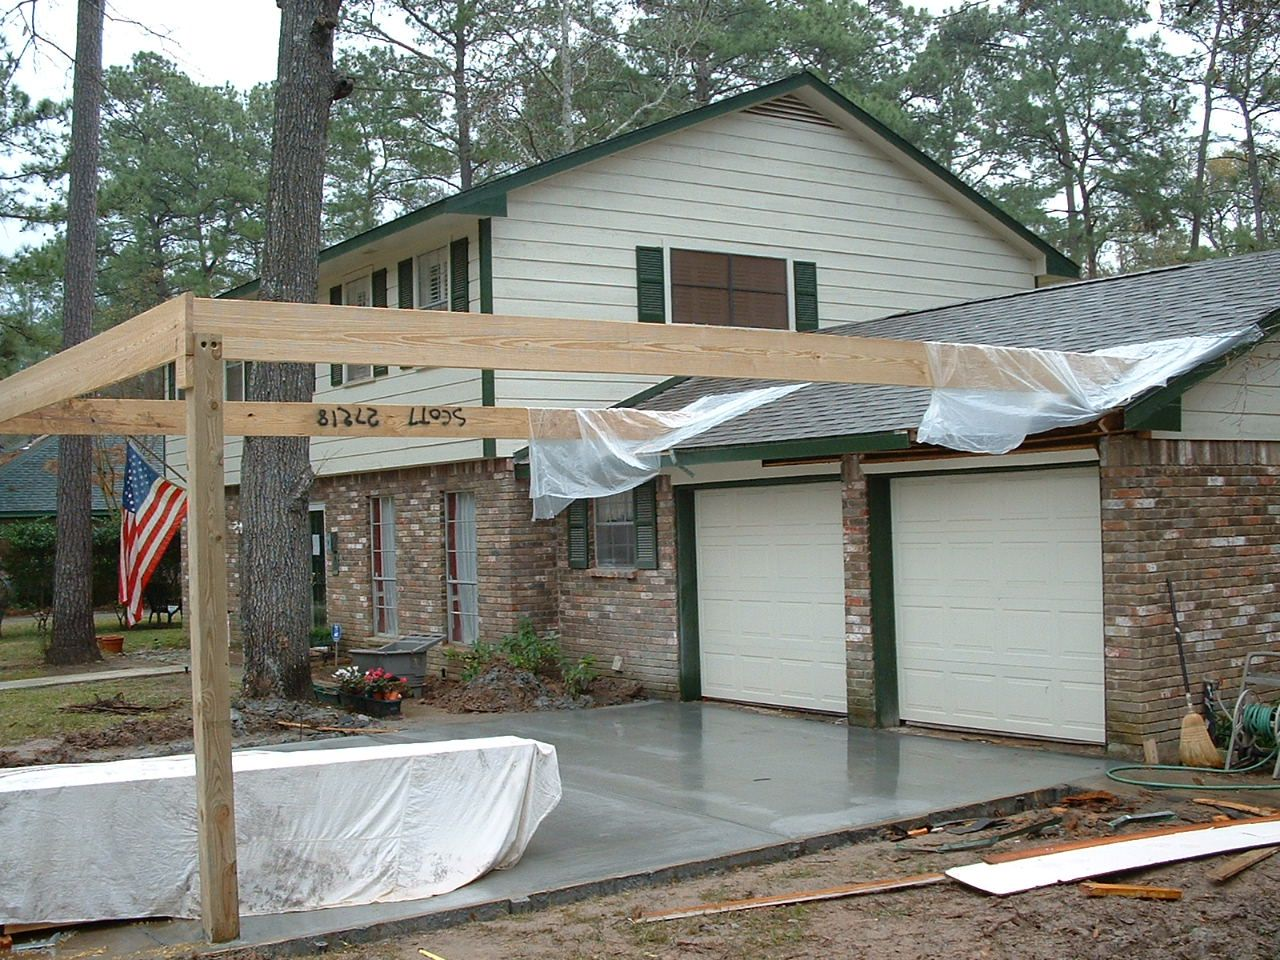 Carport In Front Of Garage Google Search Carport Makeover Diy Carport Carport